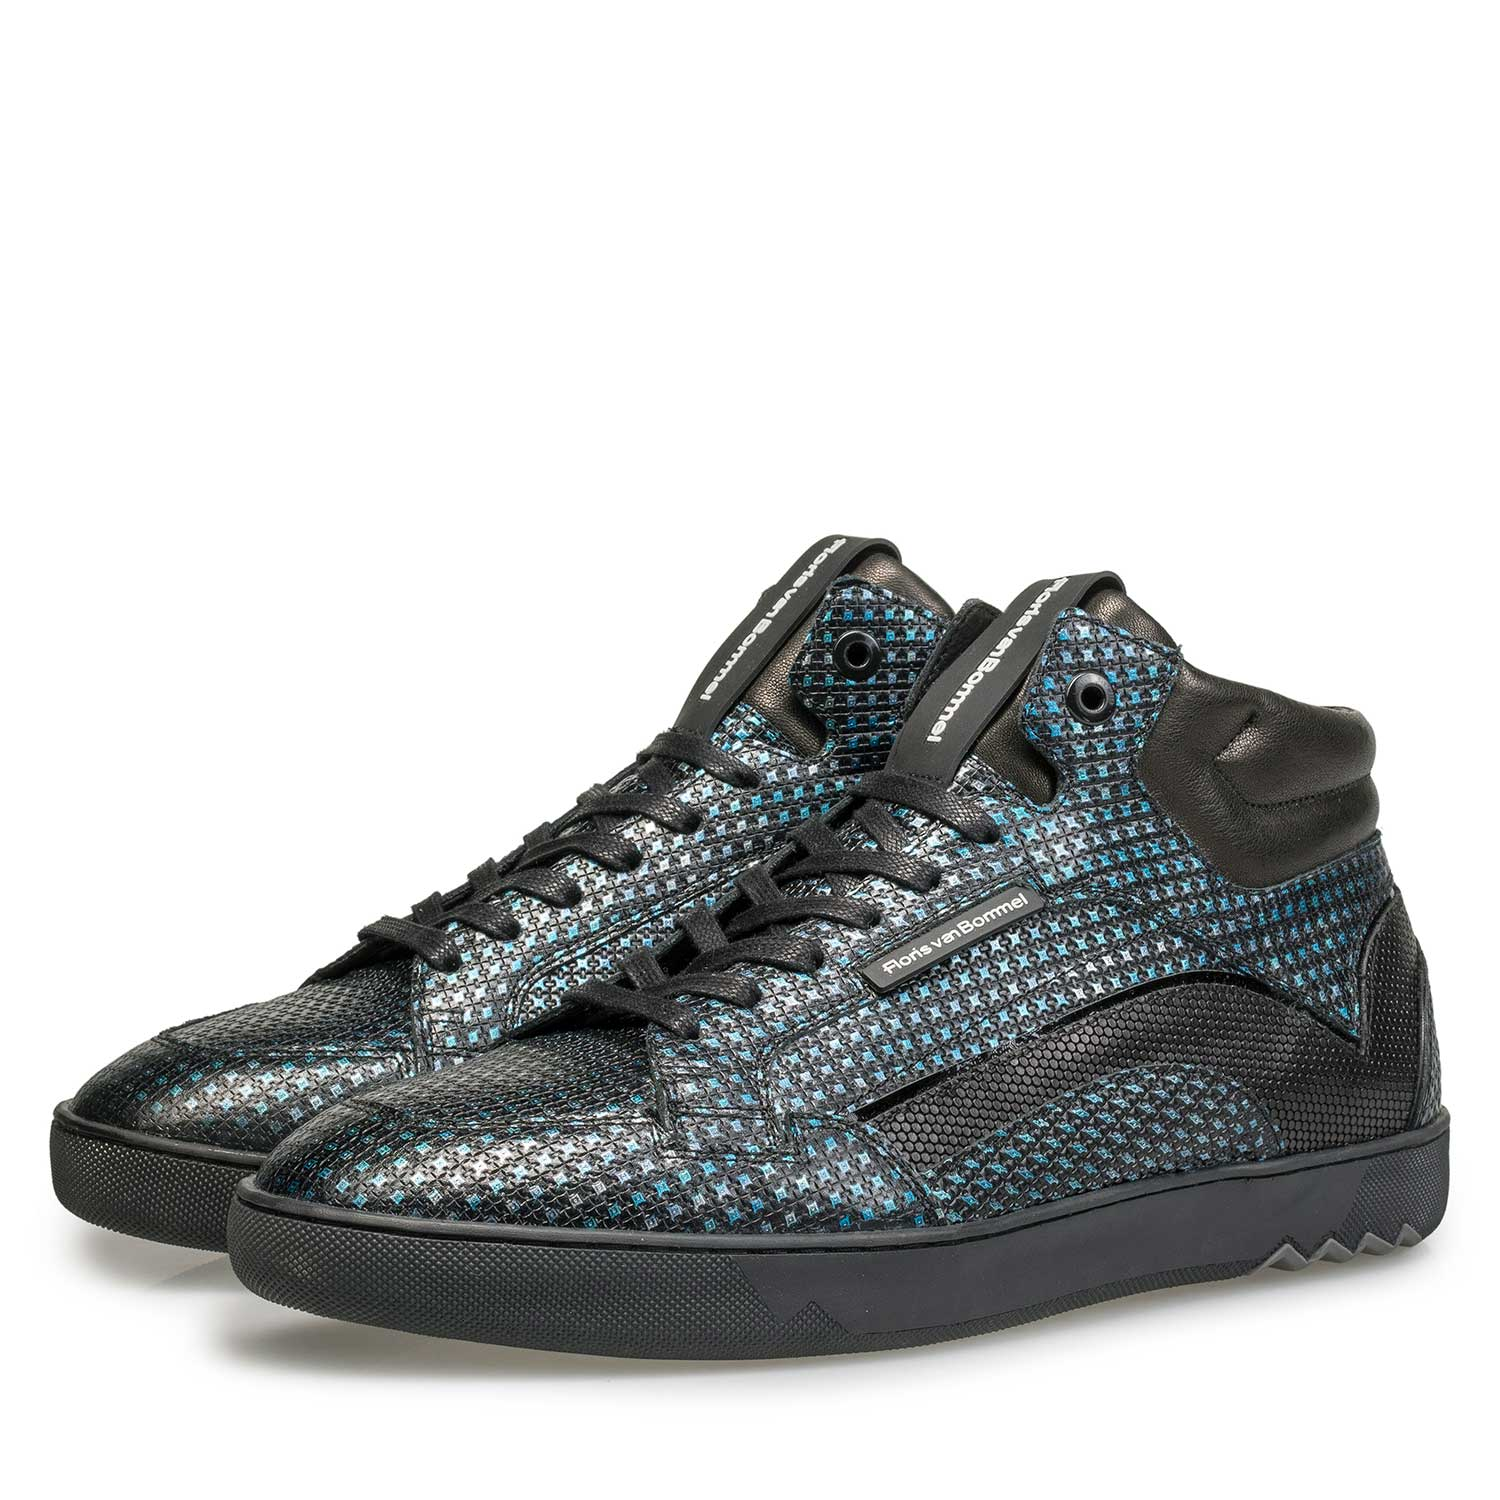 10200/10 - Blue sneaker with metallic print